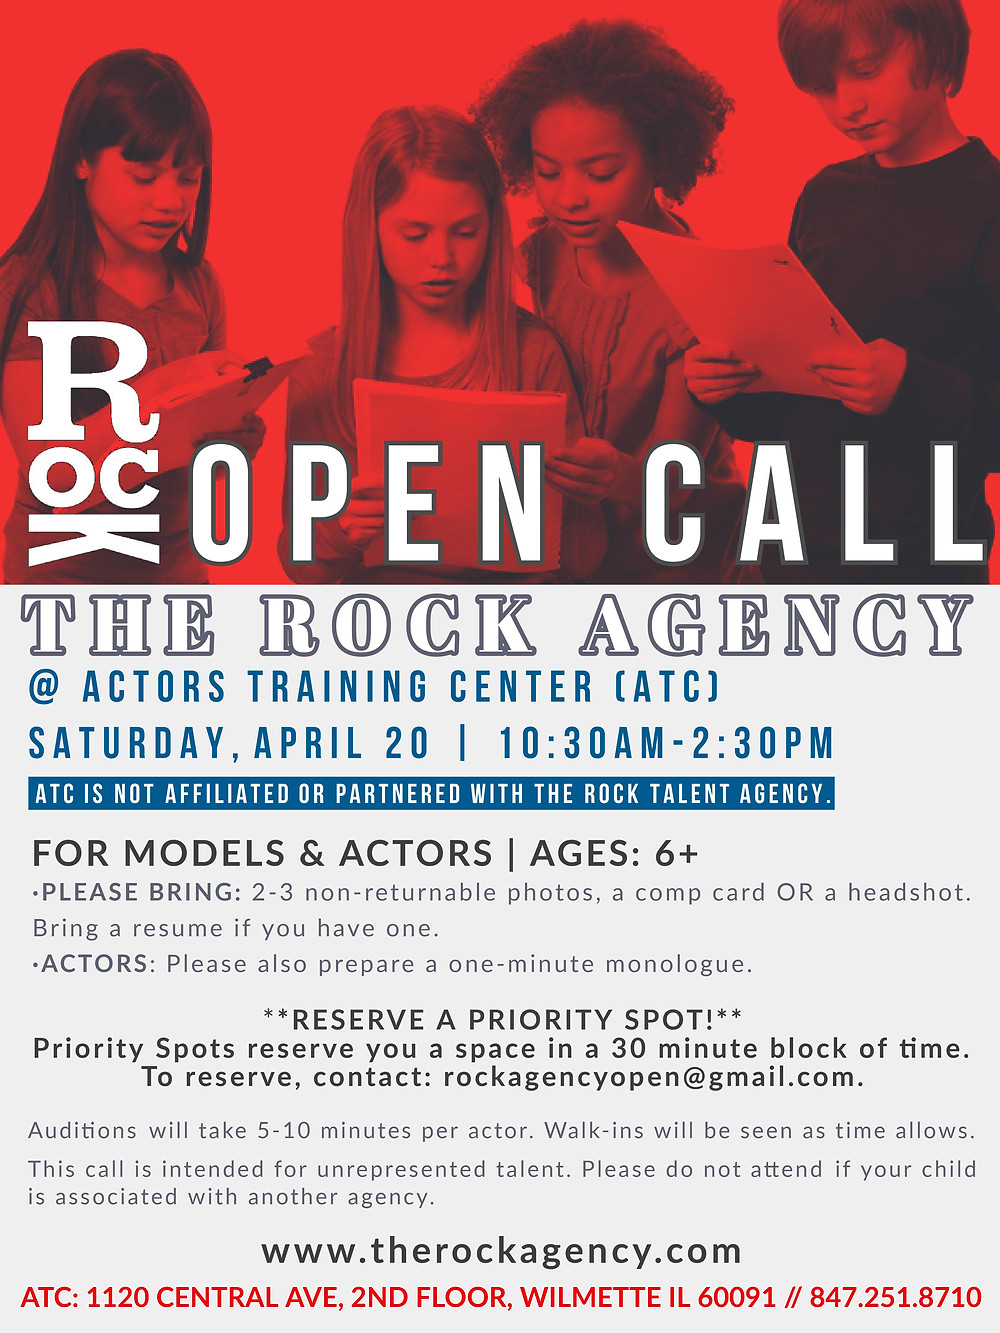 The Rock Agency Open Call